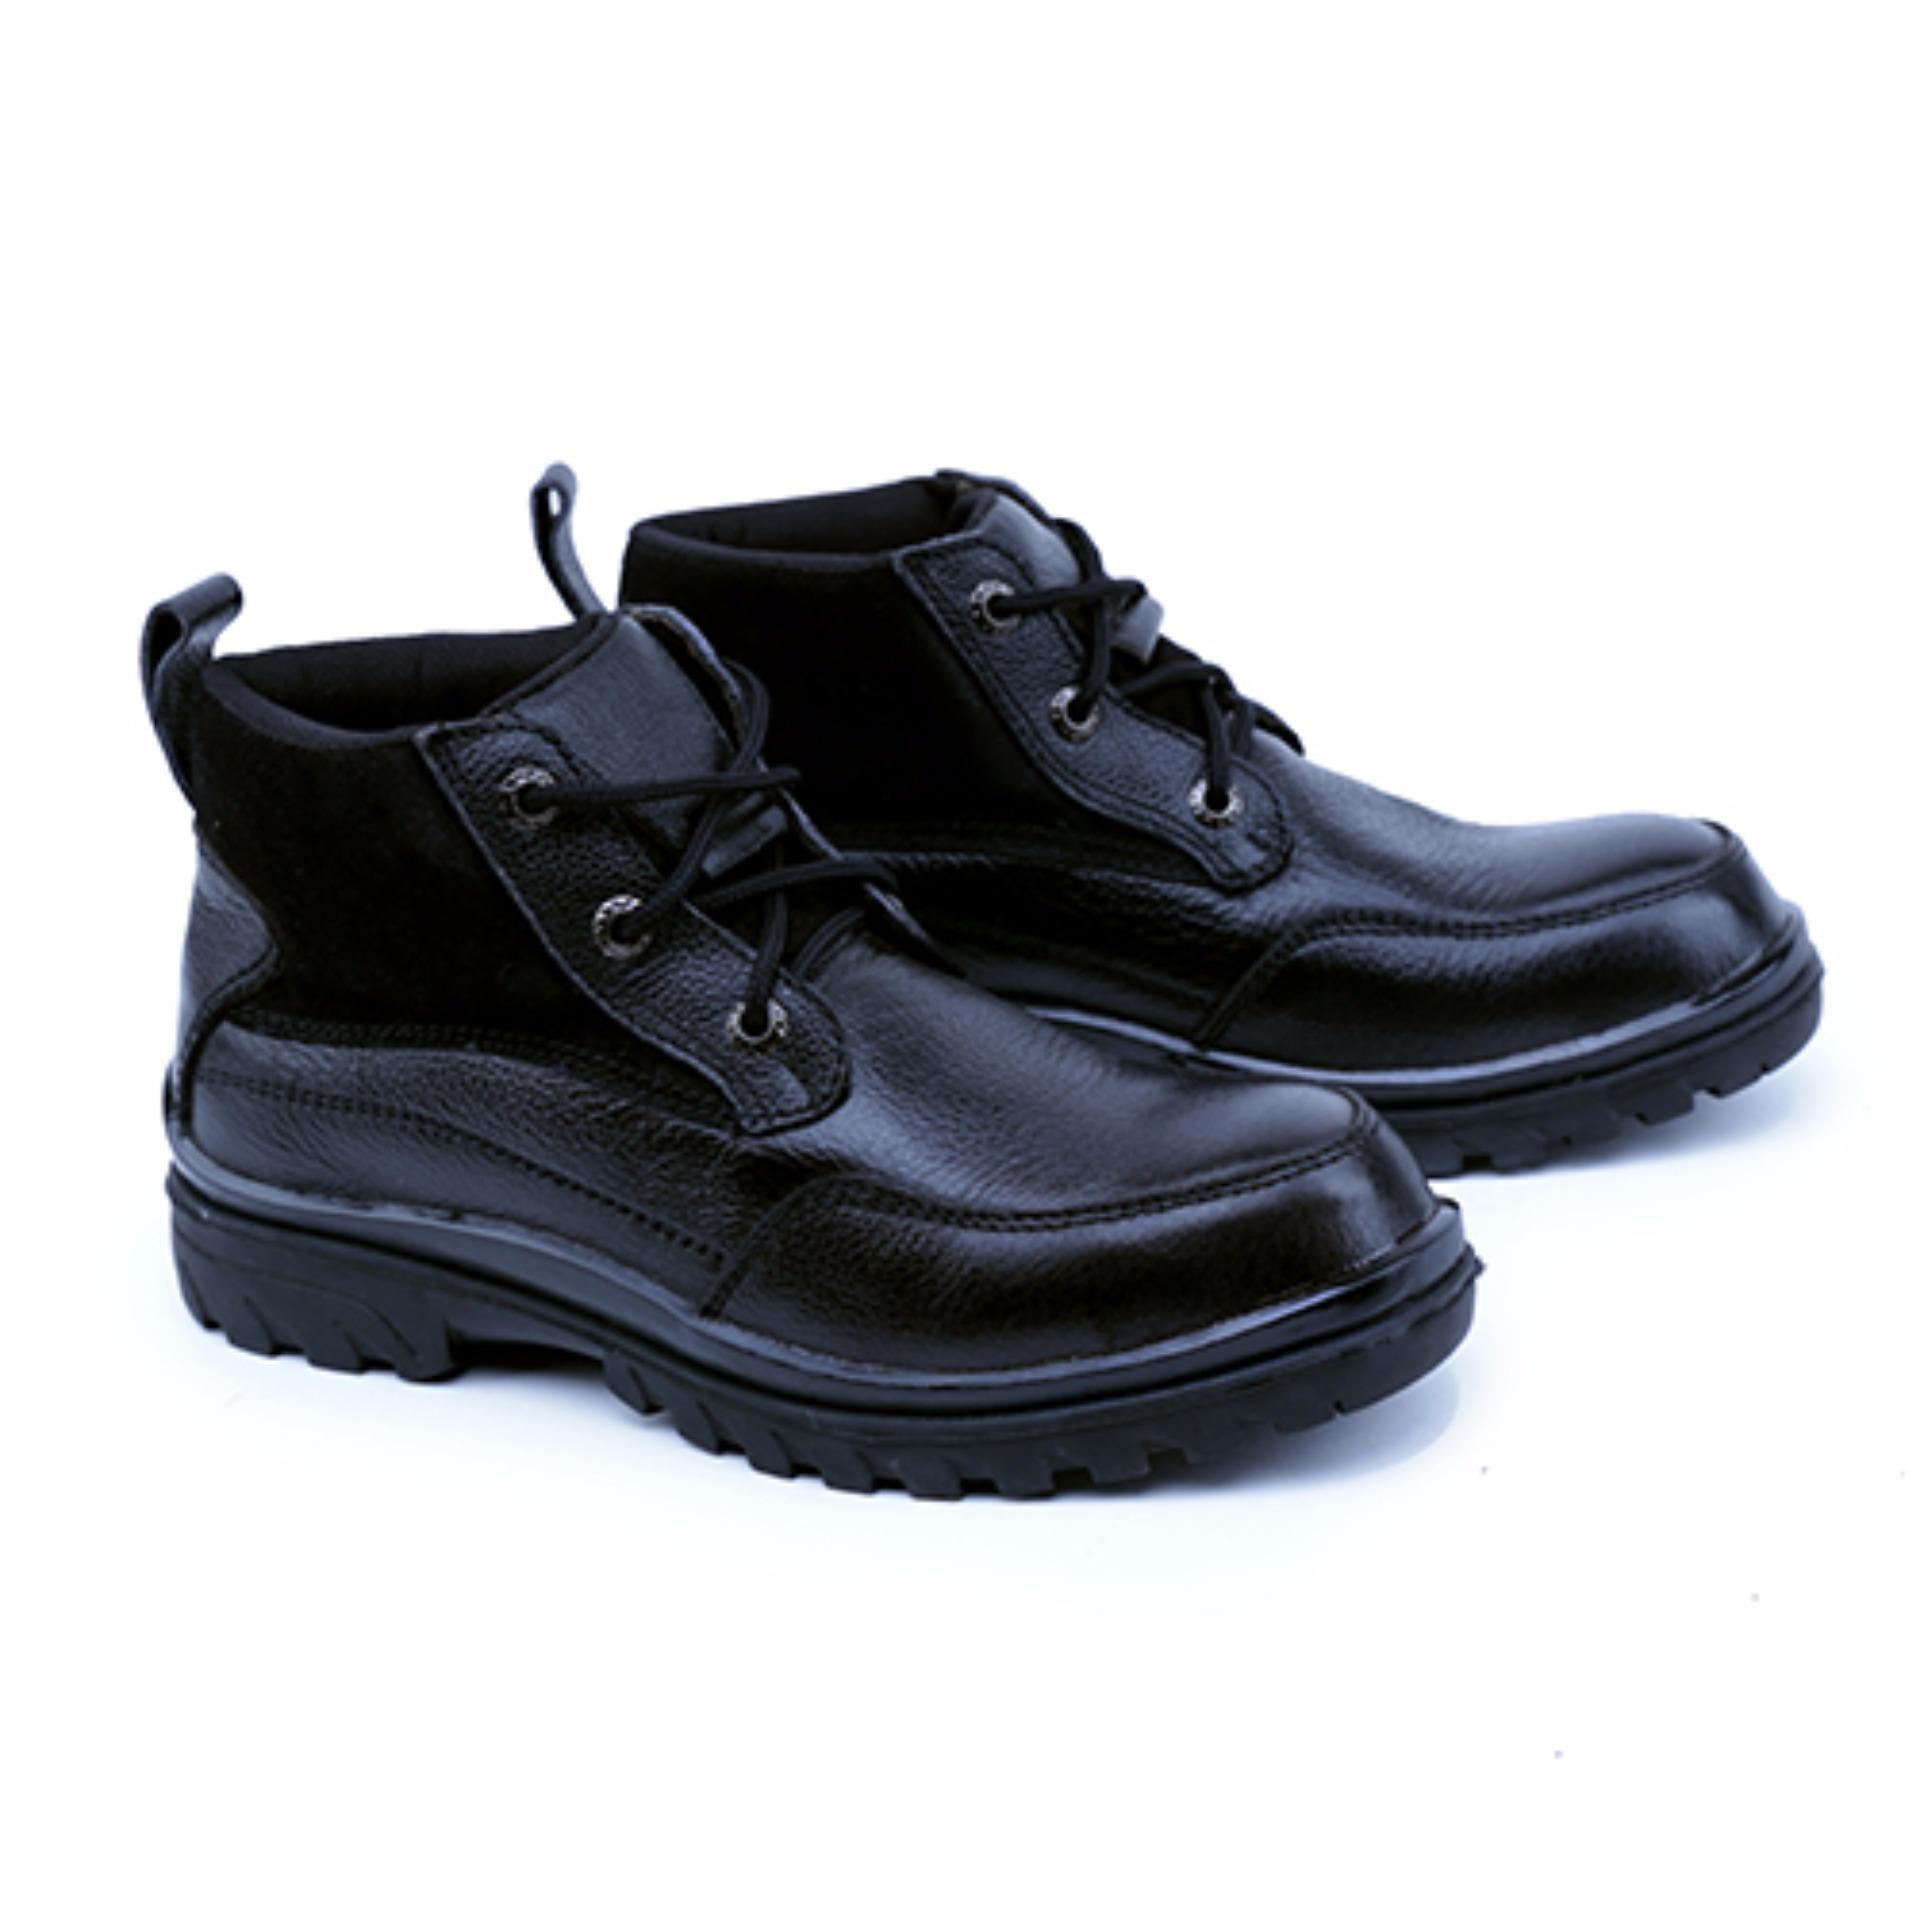 garsel-sepatu-boots-amp-safety-safety-shoes-pria-grn-2503-bahanpremium-leather-1196-65443793-0892d8d2e3956dd2ce9918fabefd6a32 10 Daftar Harga Sepatu Safety Garsel Paling Baru 2018